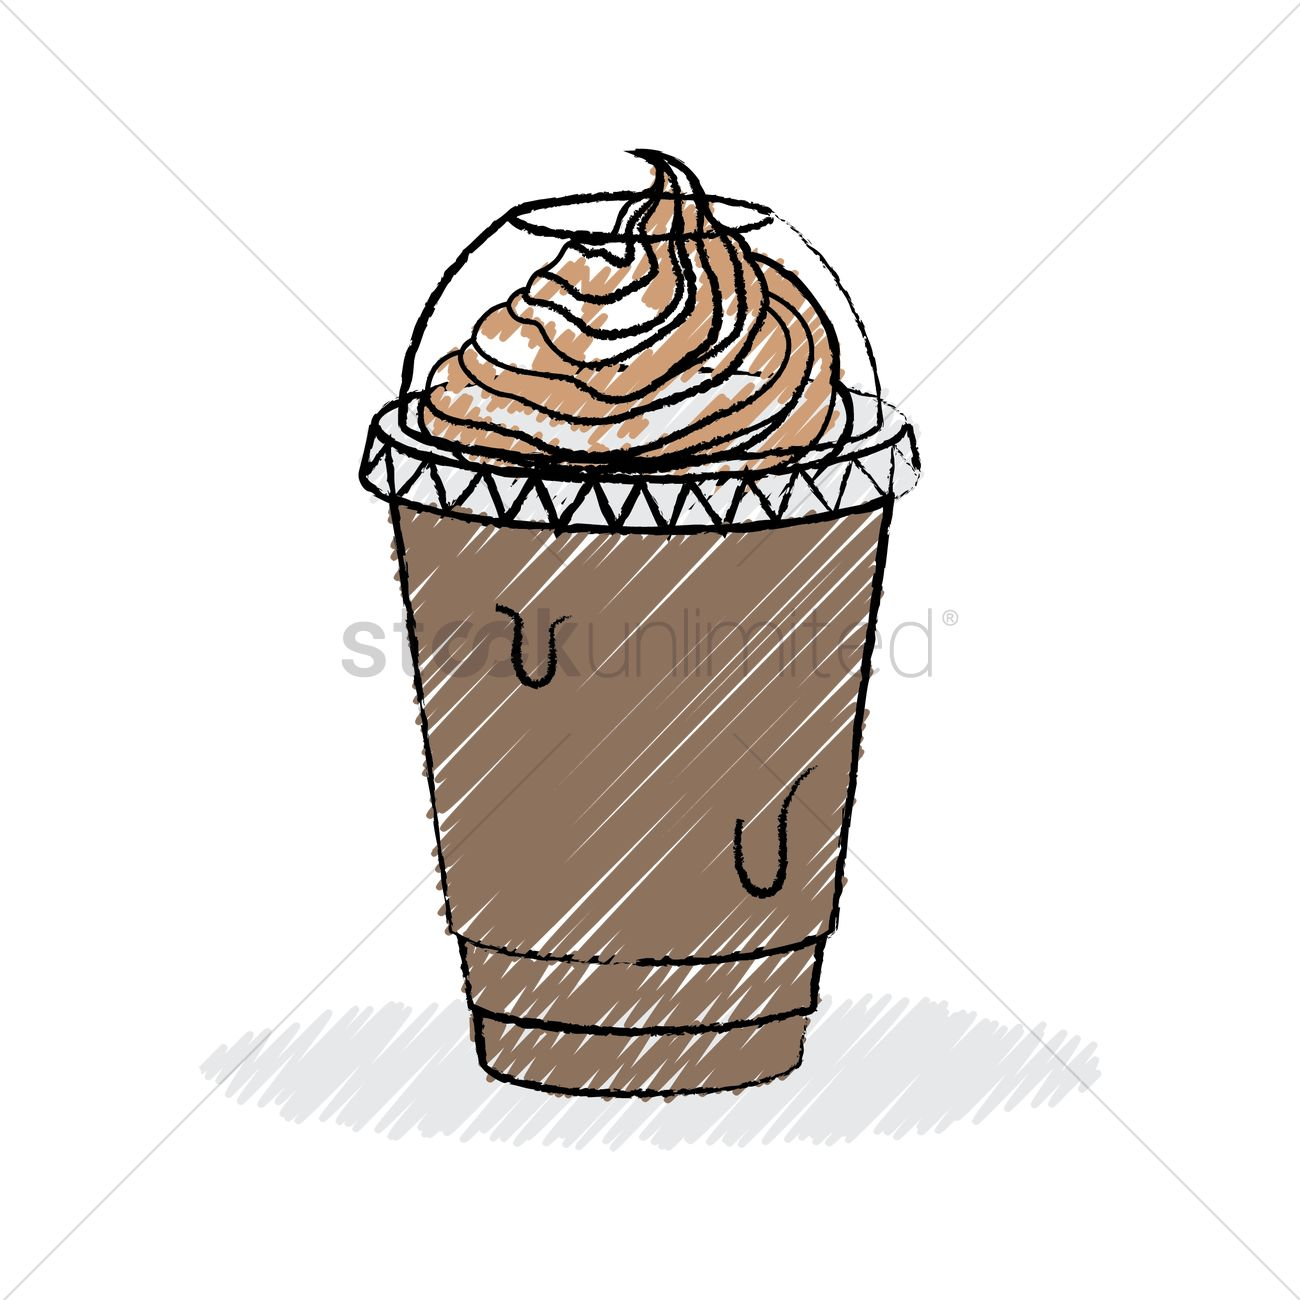 Coffee Take Away Illustration: Ice Blended Coffee With Cream Vector Image